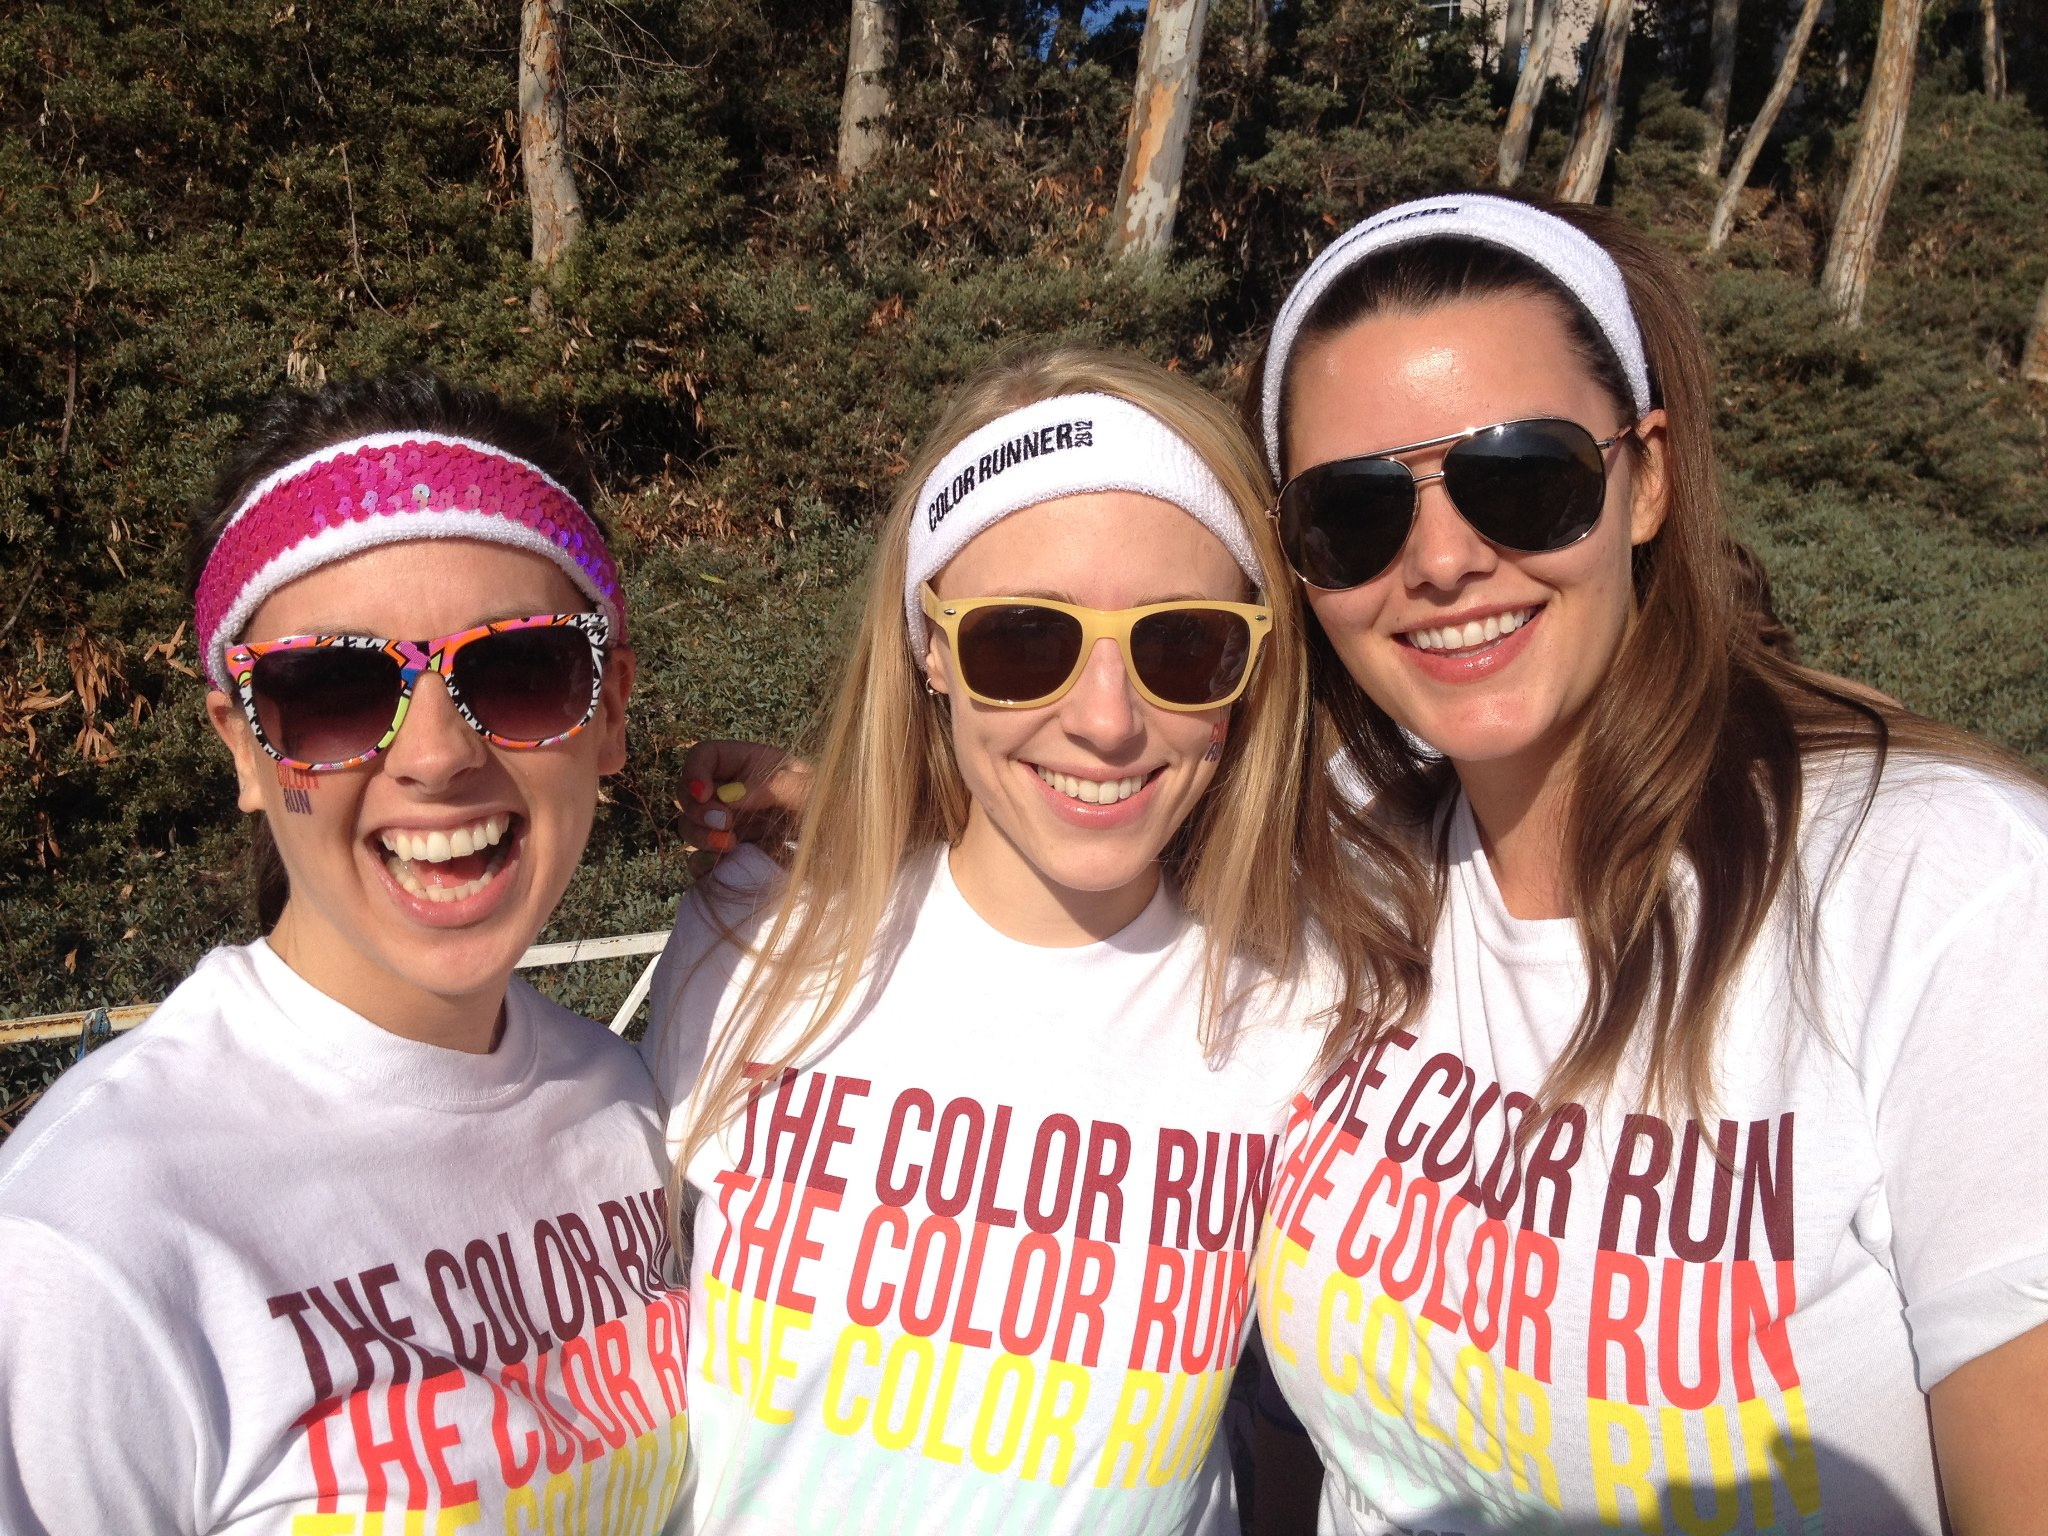 The author and some friends before The Color Run 5K